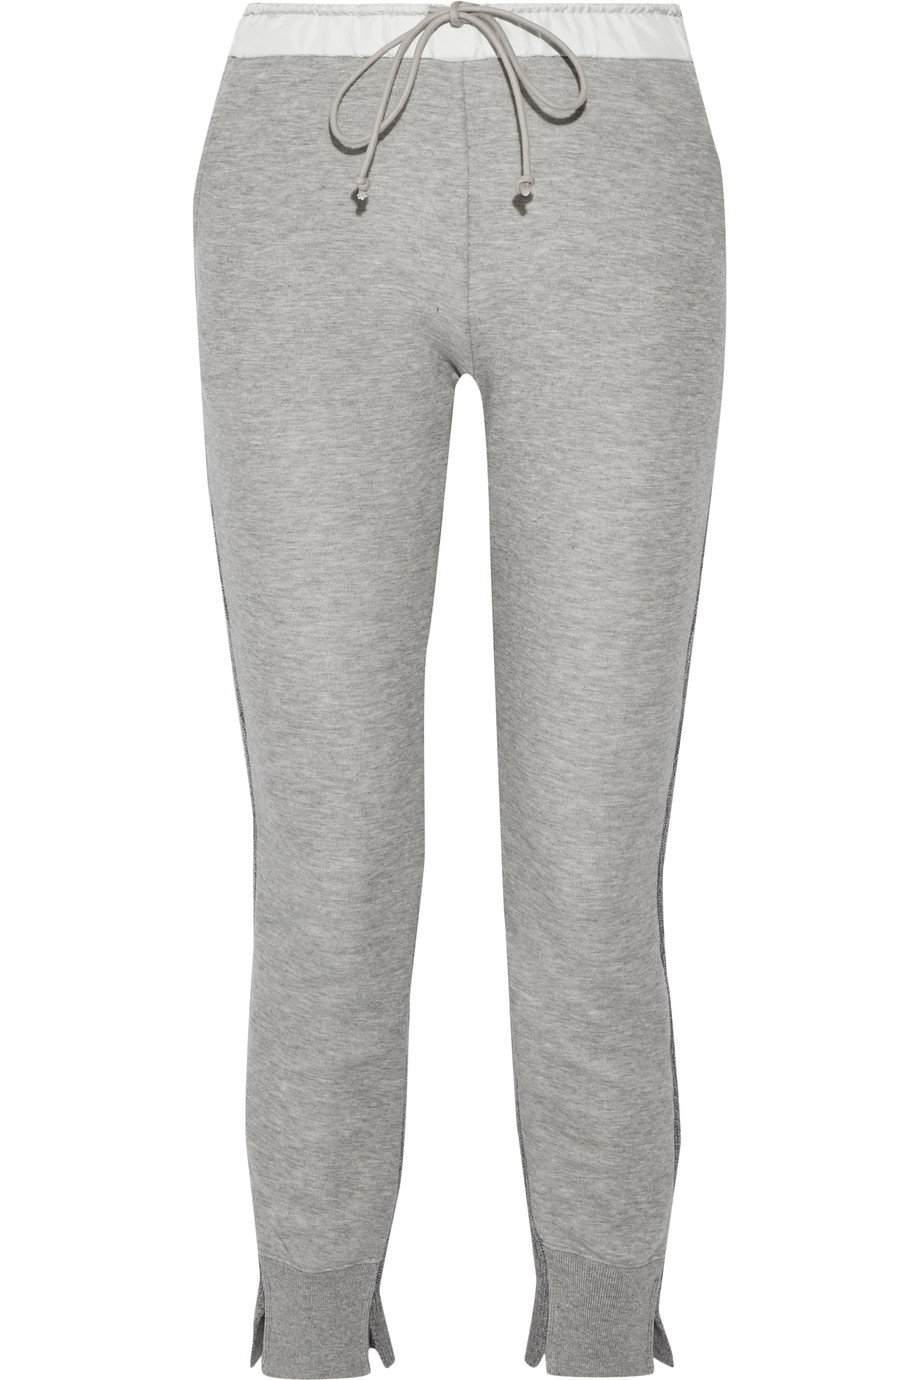 Sacai Cotton-Blend Jersey and Wool and Cashmere-Blend Track Pants, Gray, Women's, Size: 1